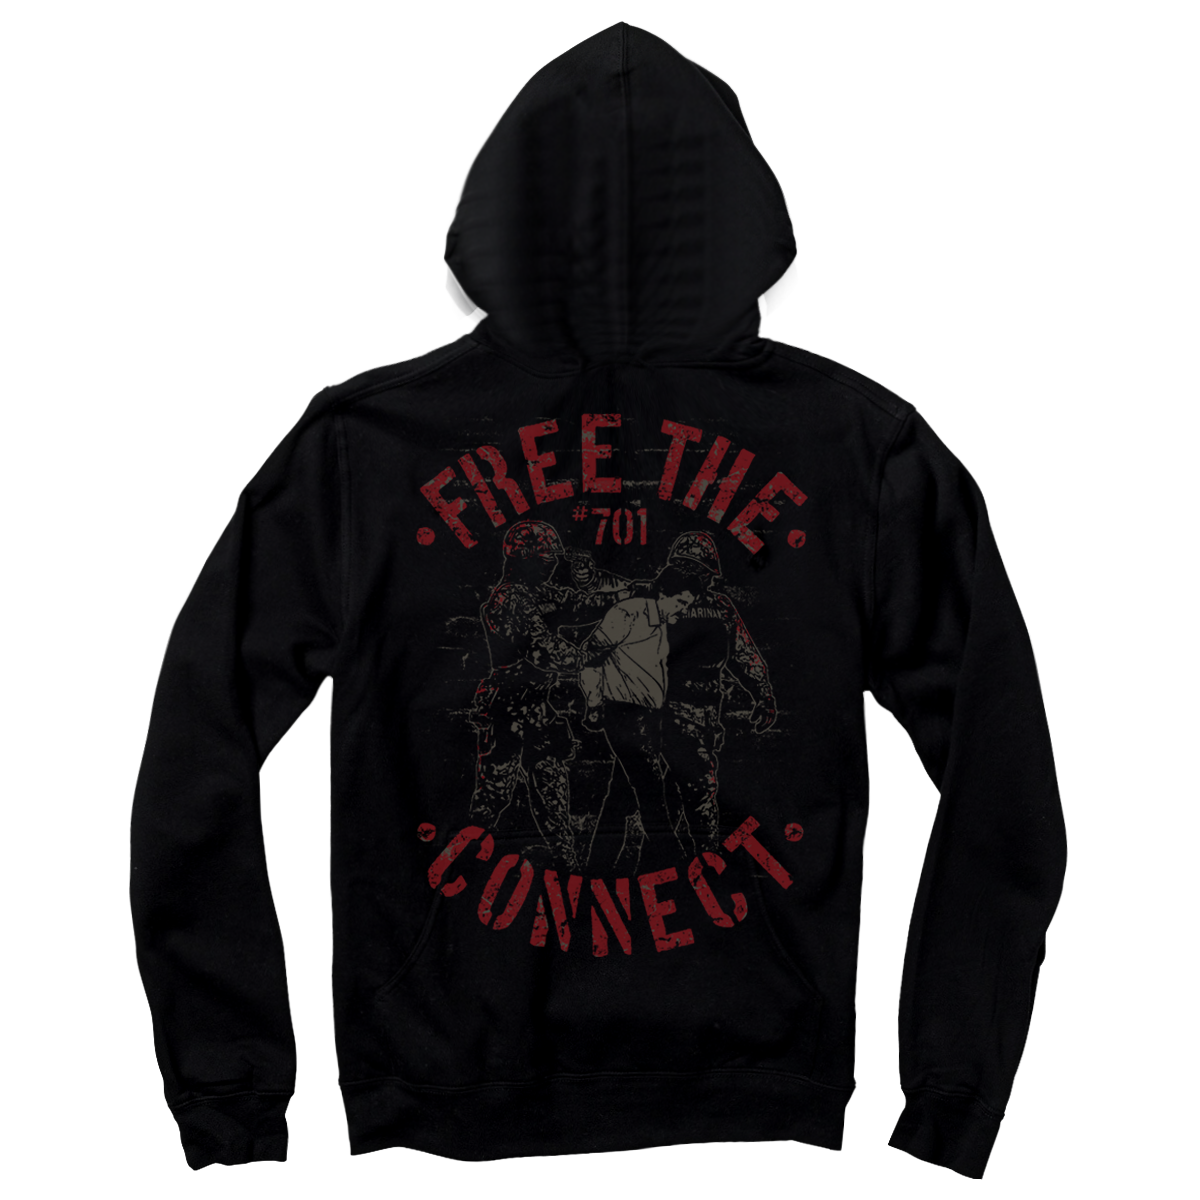 Free The connect Hoodie